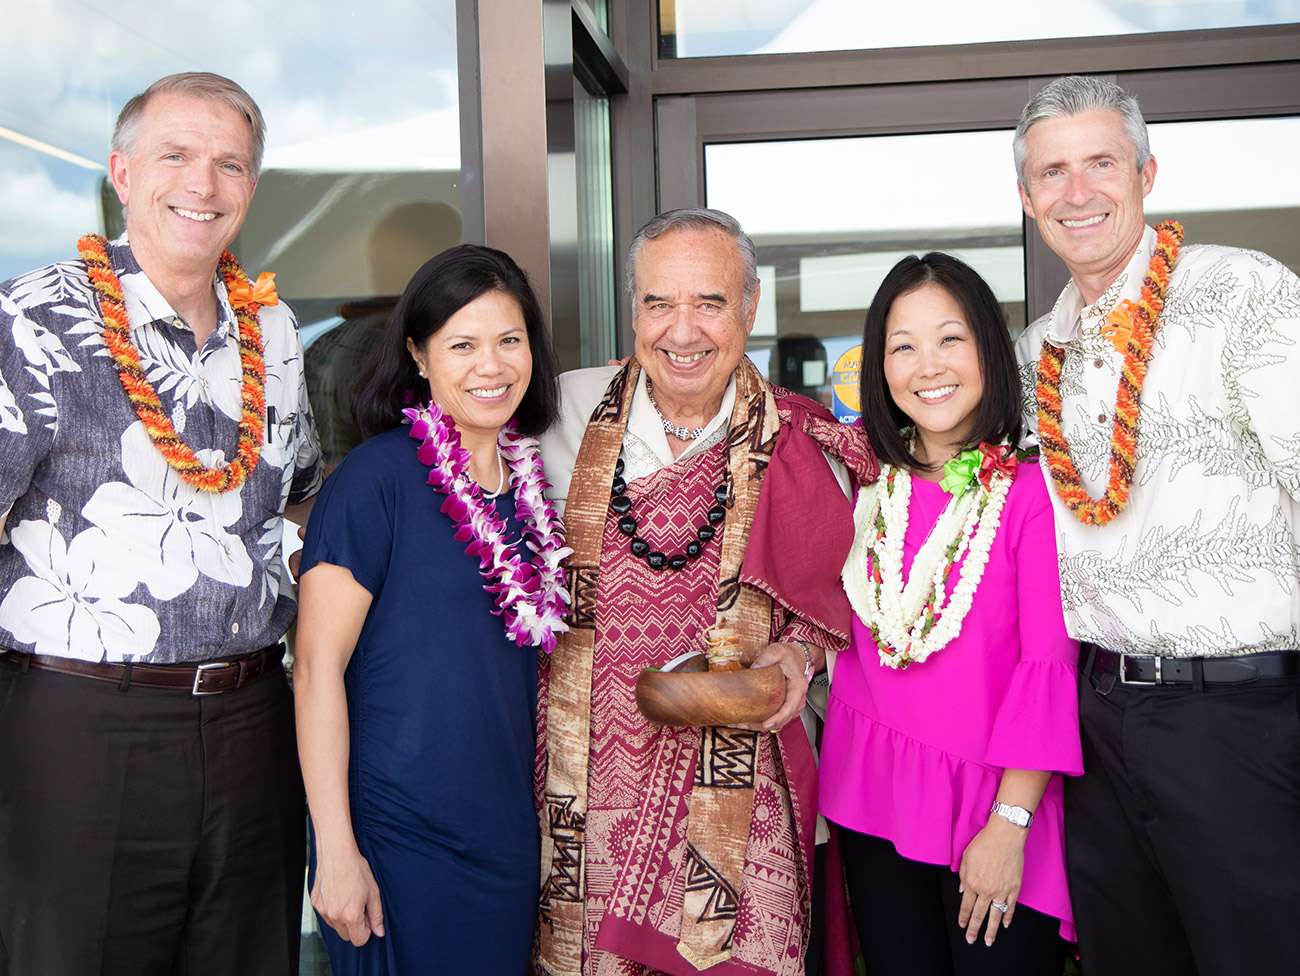 From left: Dave Underriner; Janet Myers, MD; Kahu Wendell Silva; Shanon Makekau, MD; Geoffrey Sewell, MD.